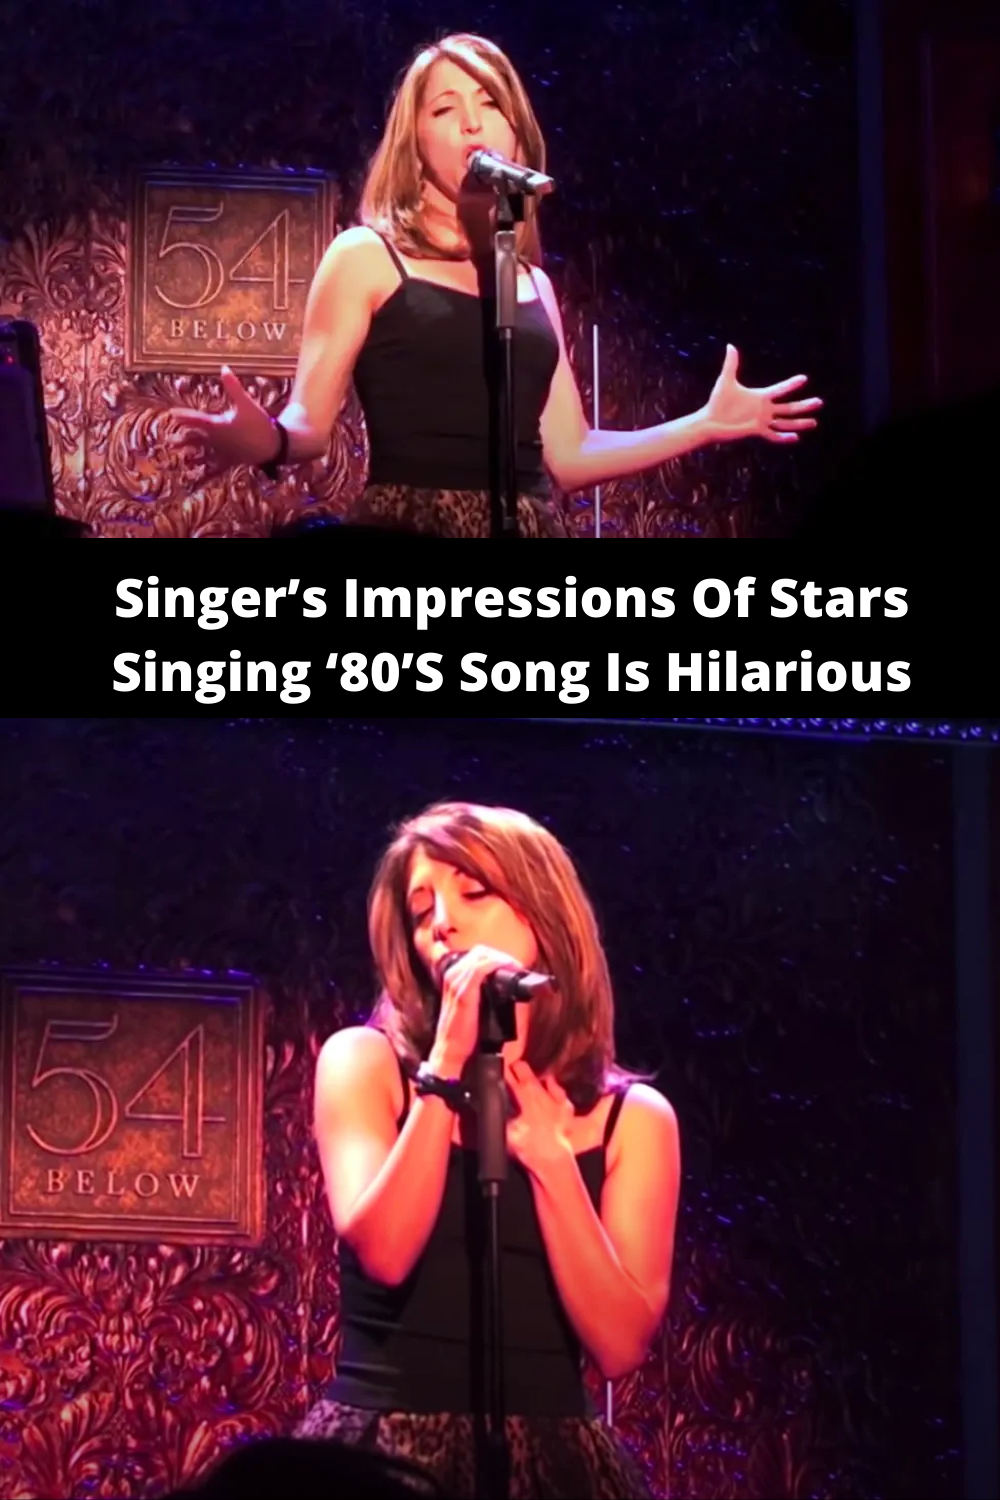 Singer's Impressions Of Stars Singing '80'S Song Is Hilarious